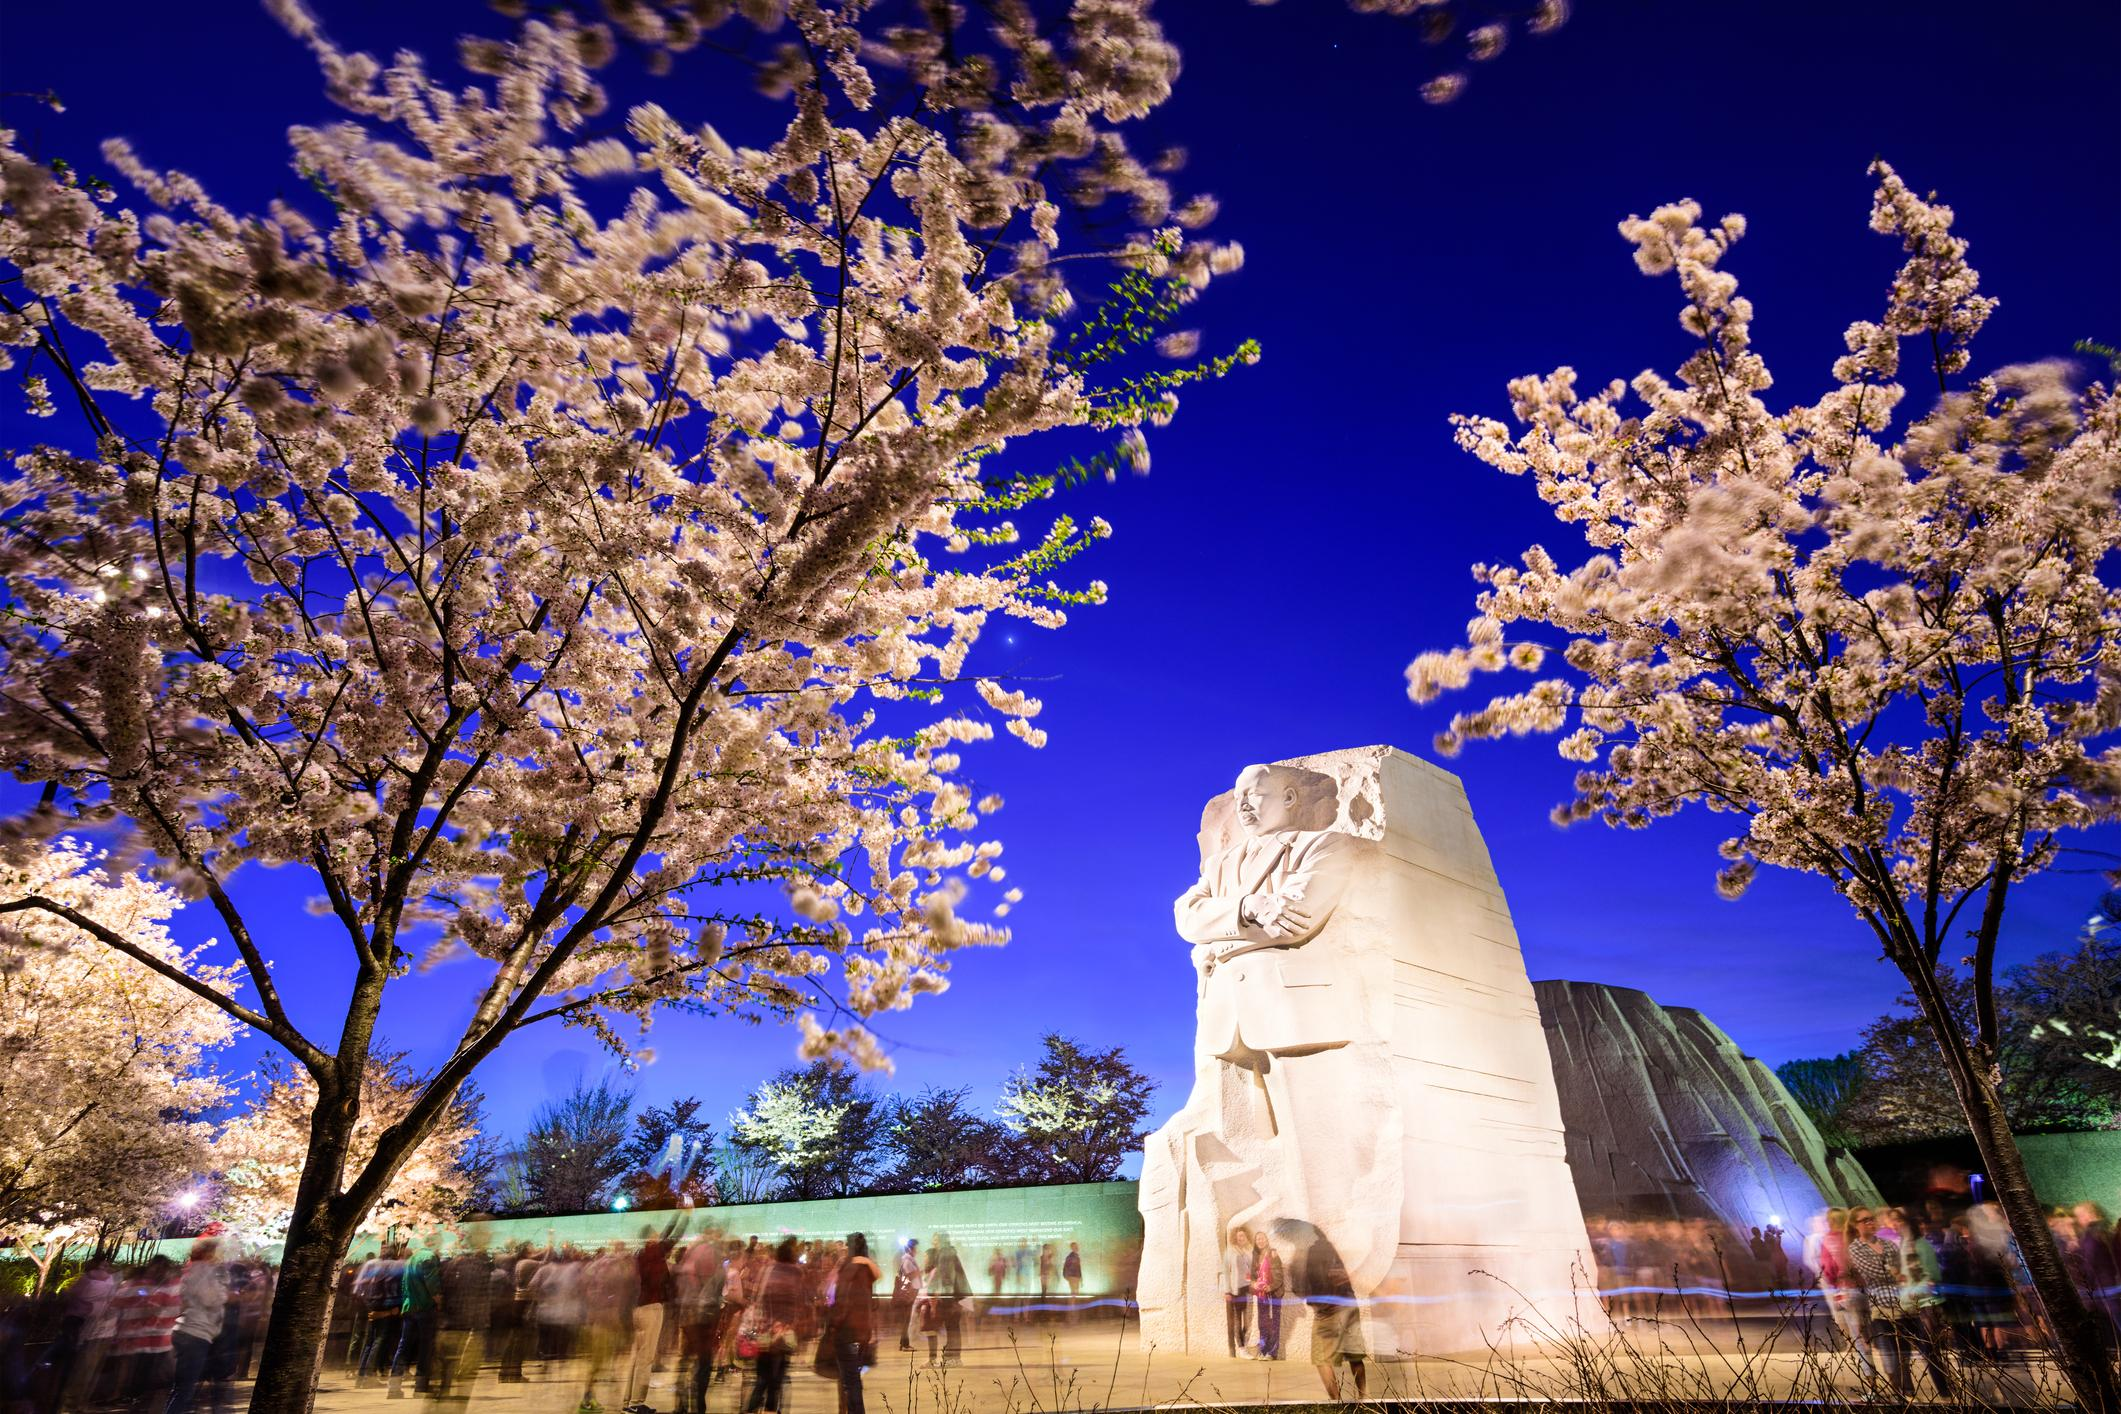 Tourists gather under the Martin Luther King, Jr. Memorial in West Potomac Park.